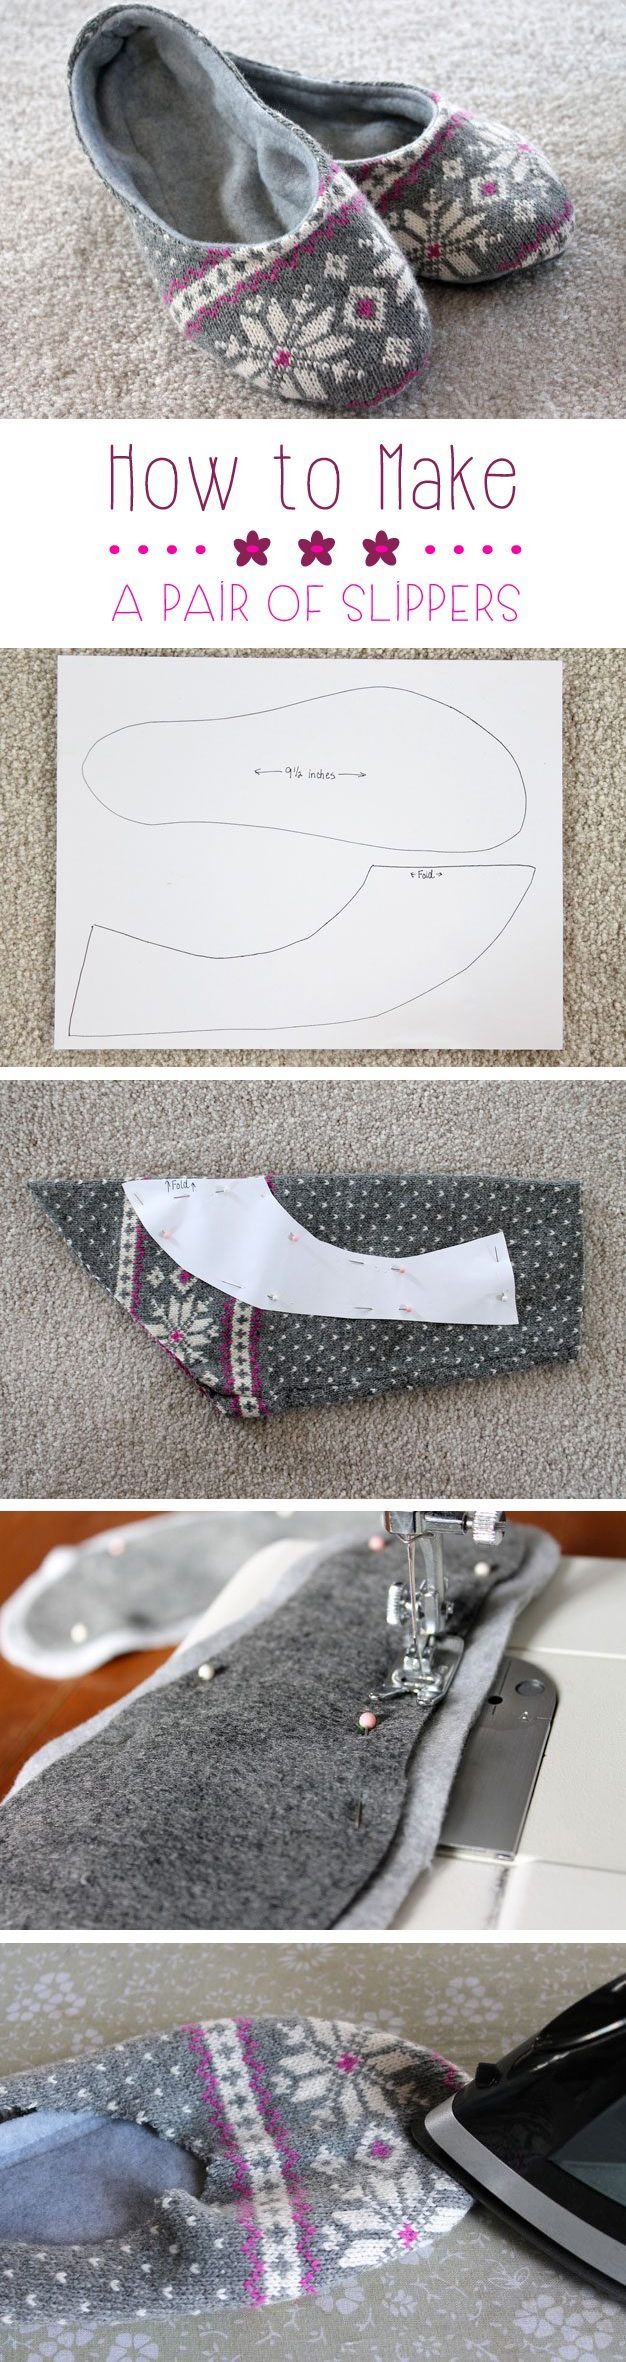 Upcycling has quickly become on our favorites things to do! Transform an old sweater or sweatshirt into these lovely, cozy slippers for around the house: www.ehow.com/...: Upcycling has quickly become on our favorites things to do! Transform an old sweater or sweatshirt into these lovely, cozy slippers for around the house: www.ehow.com/...